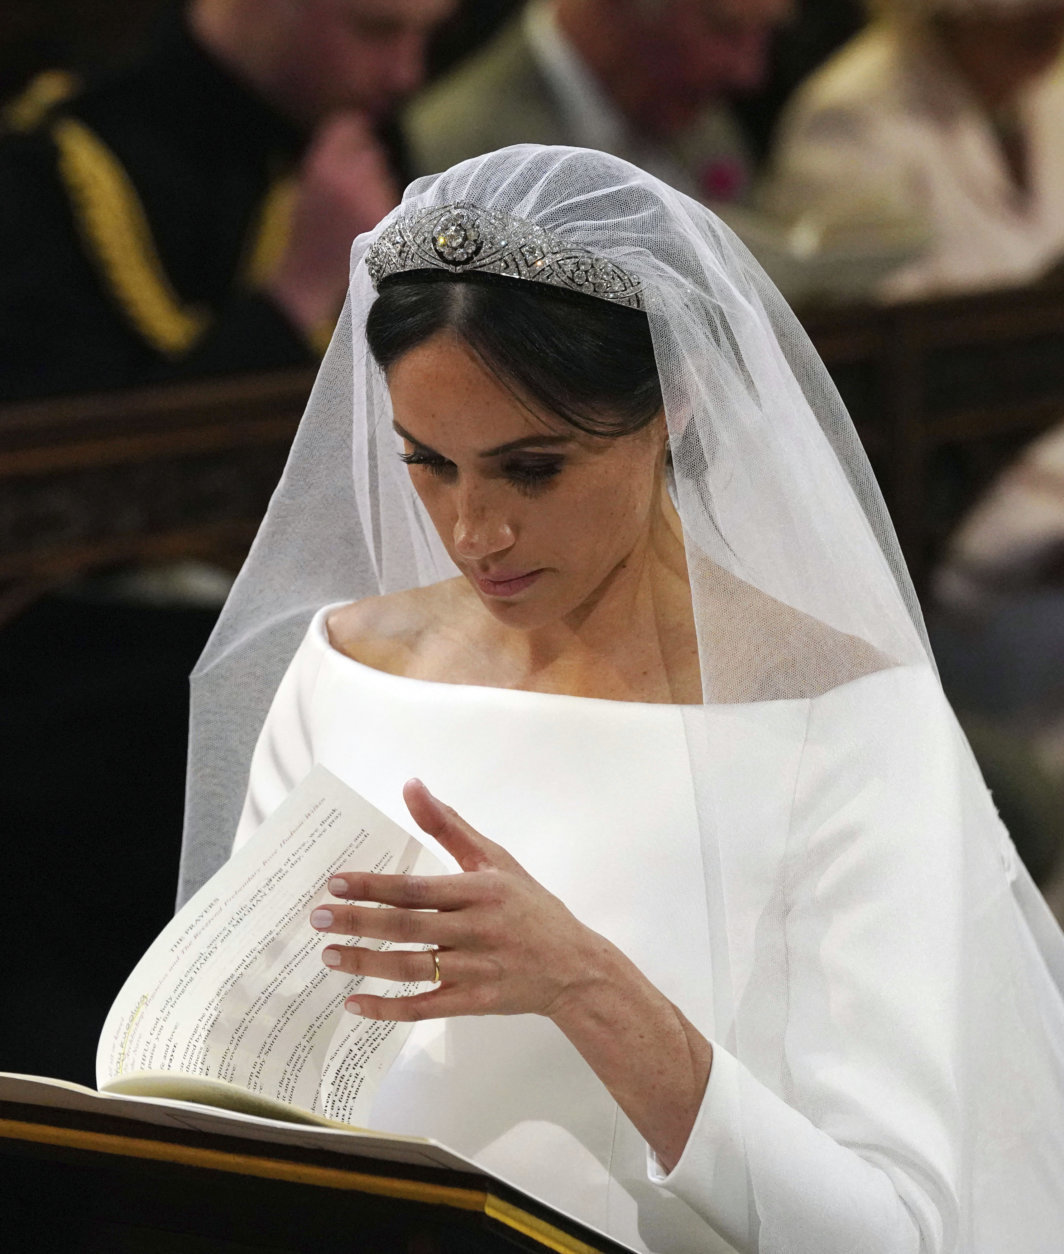 Meghan Markle during their wedding service at St. George's Chapel in Windsor Castle in Windsor, near London, England, Saturday, May 19, 2018. (Jonathan Brady/pool photo via AP)